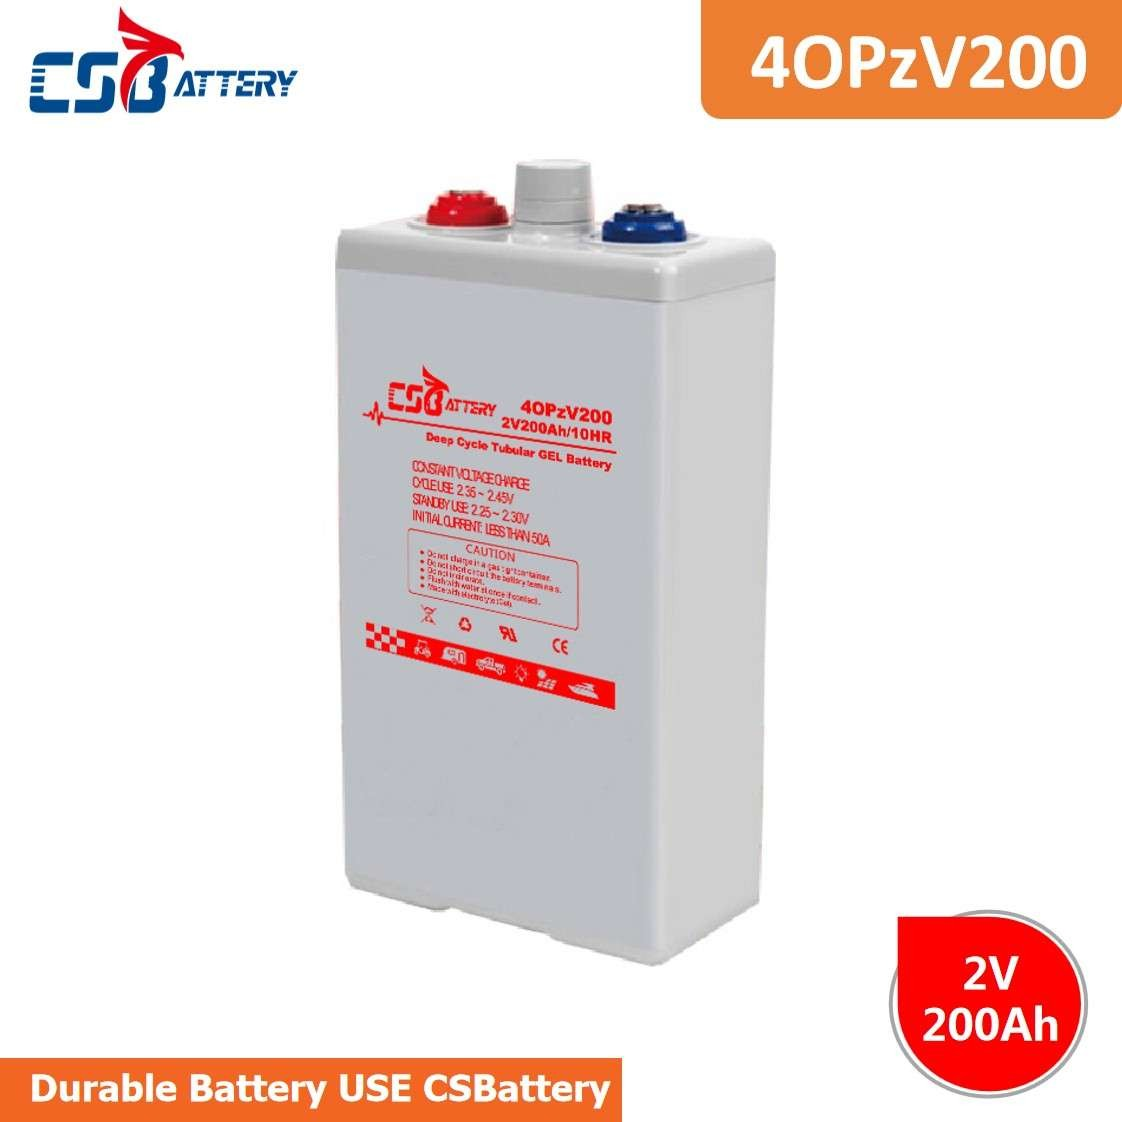 CSBattery 2V200Ah Long Cycle Life Rechargeable Solar  Battery For Medical/sweeper/Inverter/Power-Tools/Turf&Irrigation-Systems